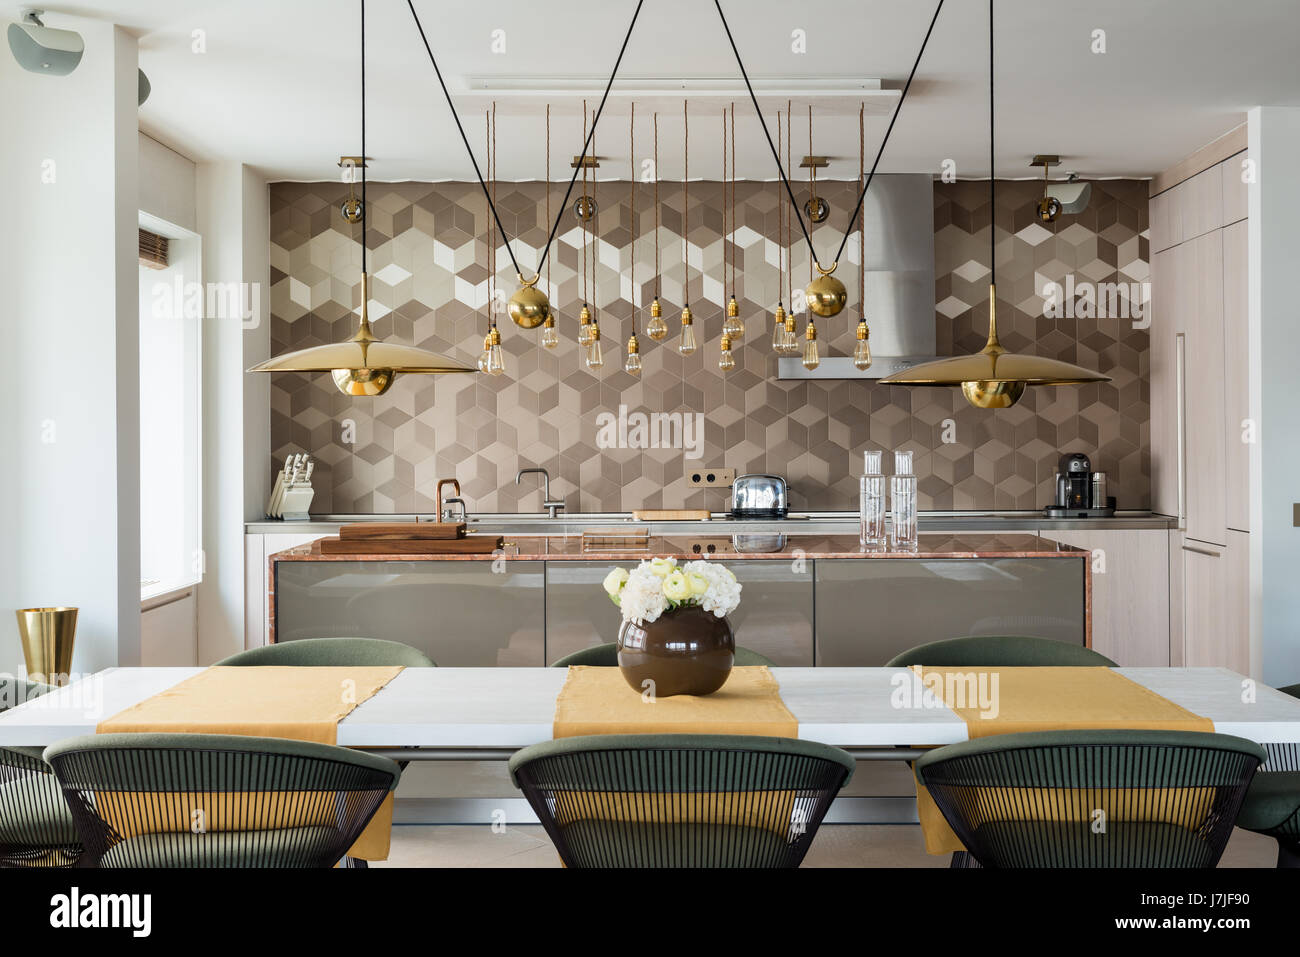 Marble worktop kitchen island with Bulthaup units and brass hanging lights - Stock Image